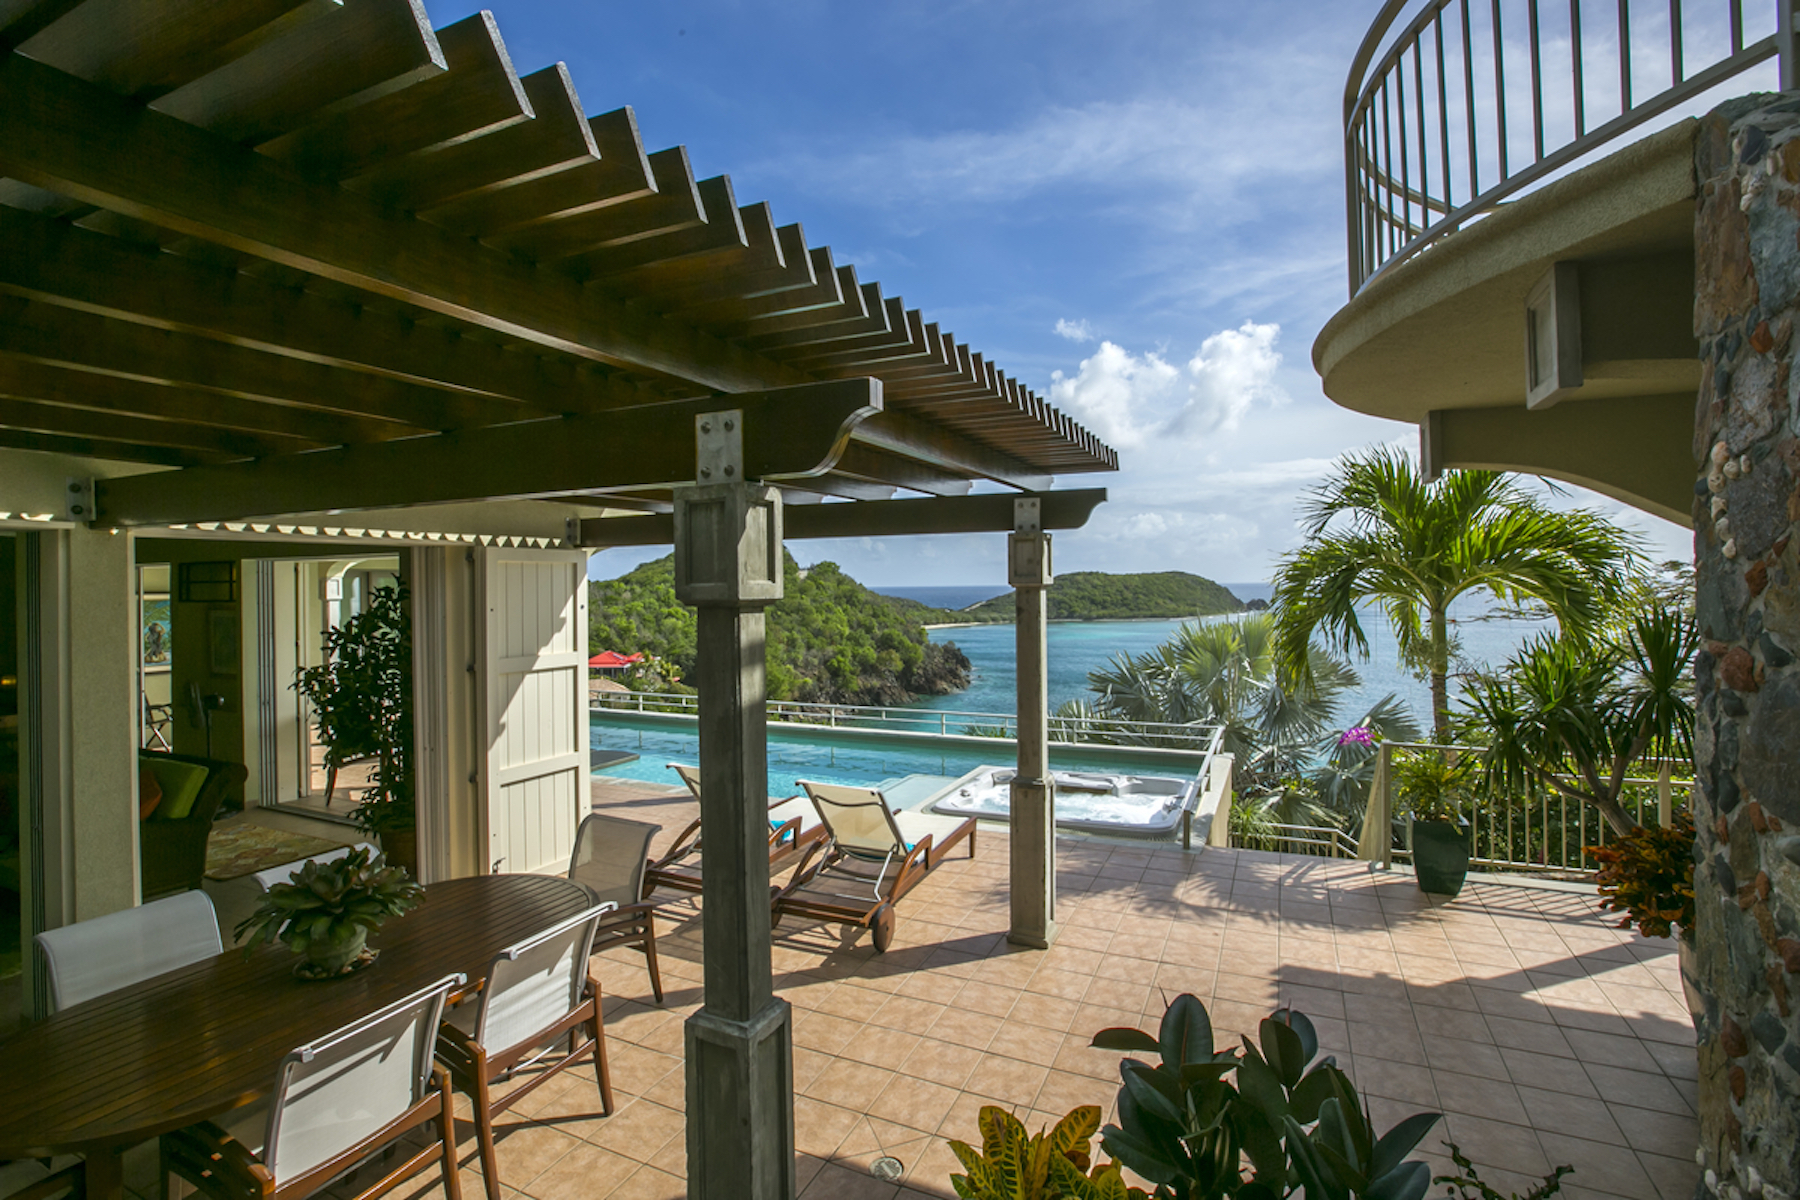 Single Family Homes for Sale at Latitude Villa 15A-7-13 Rendezvous & Ditleff St John, Virgin Islands 00830 United States Virgin Islands